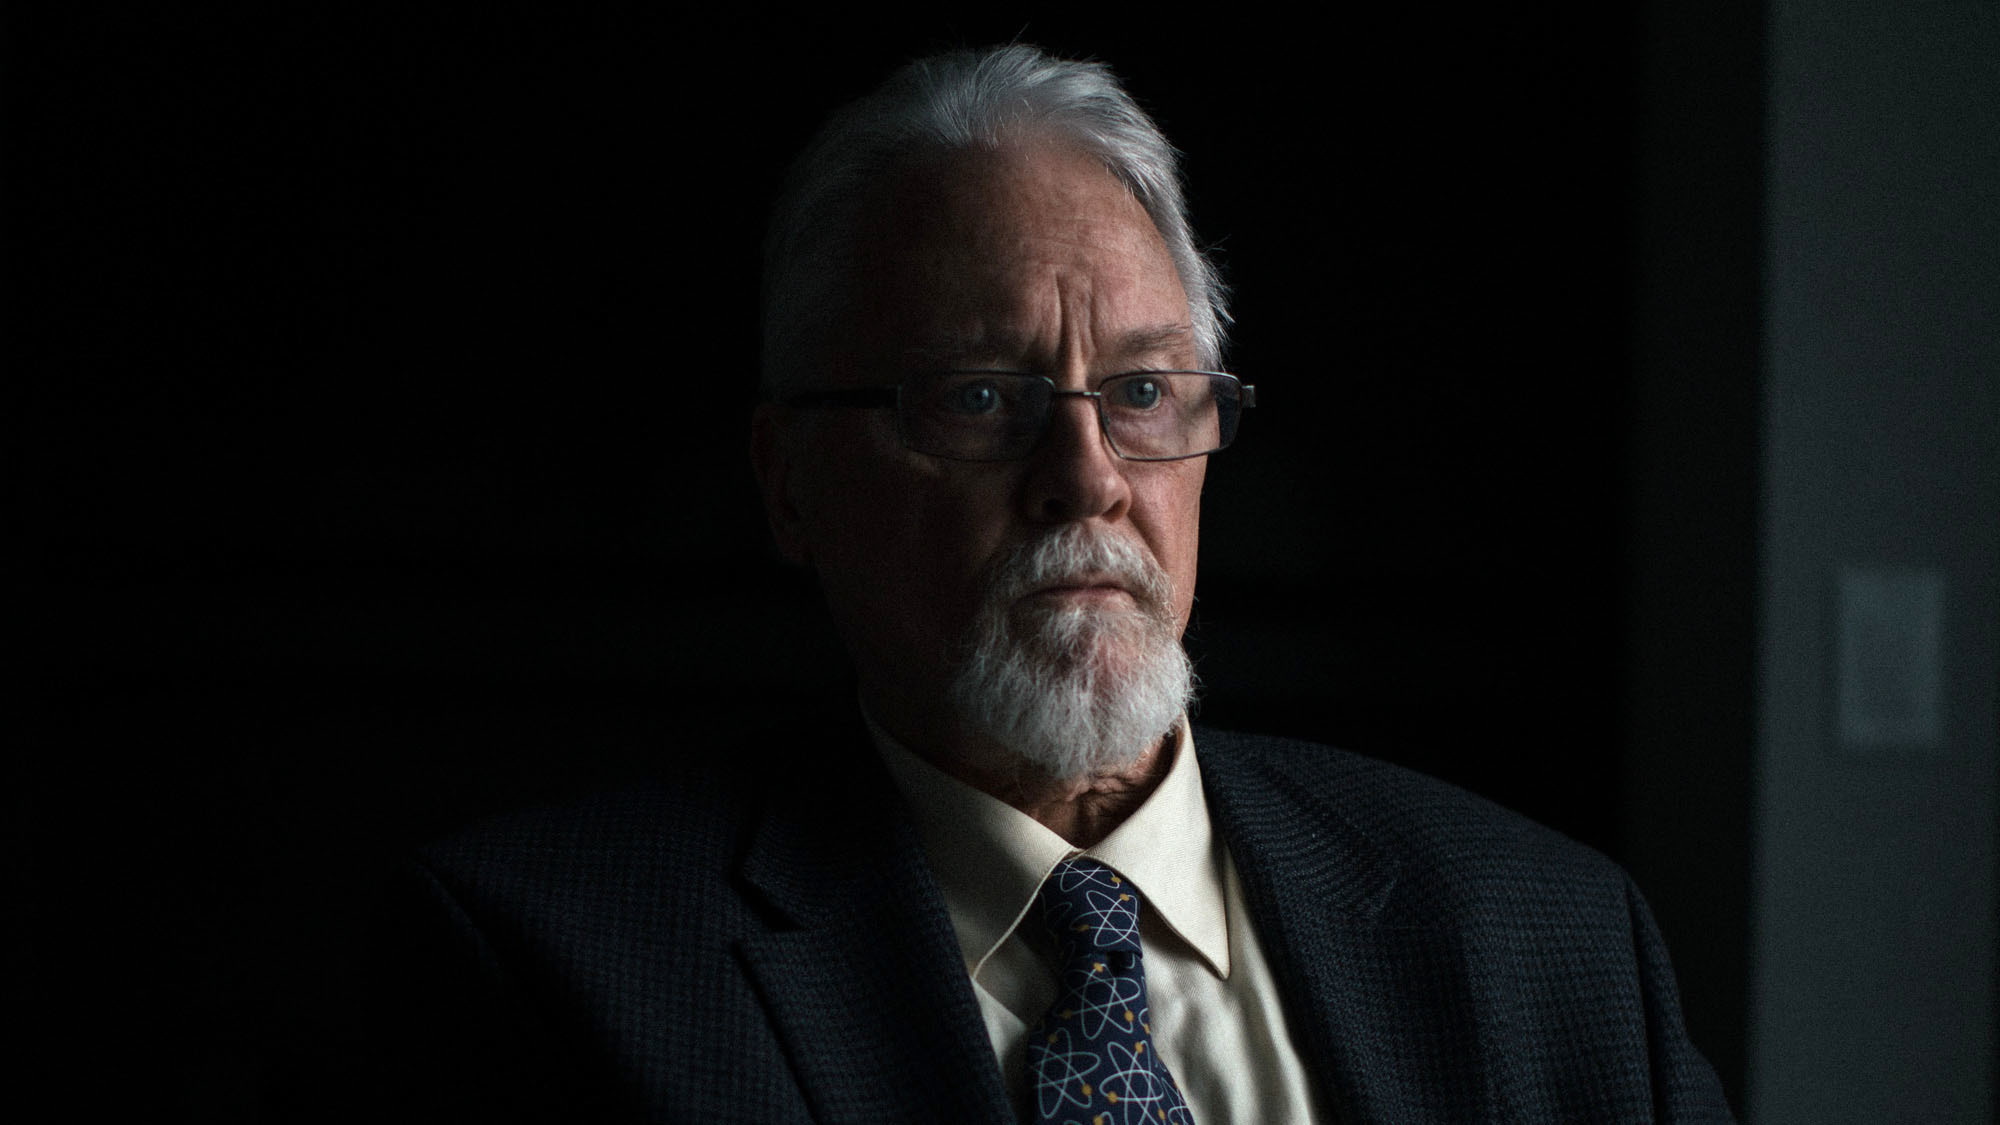 John Coster-Mullen has reverse-engineered America's first nuclear weapons and has self-published a book on his findings.